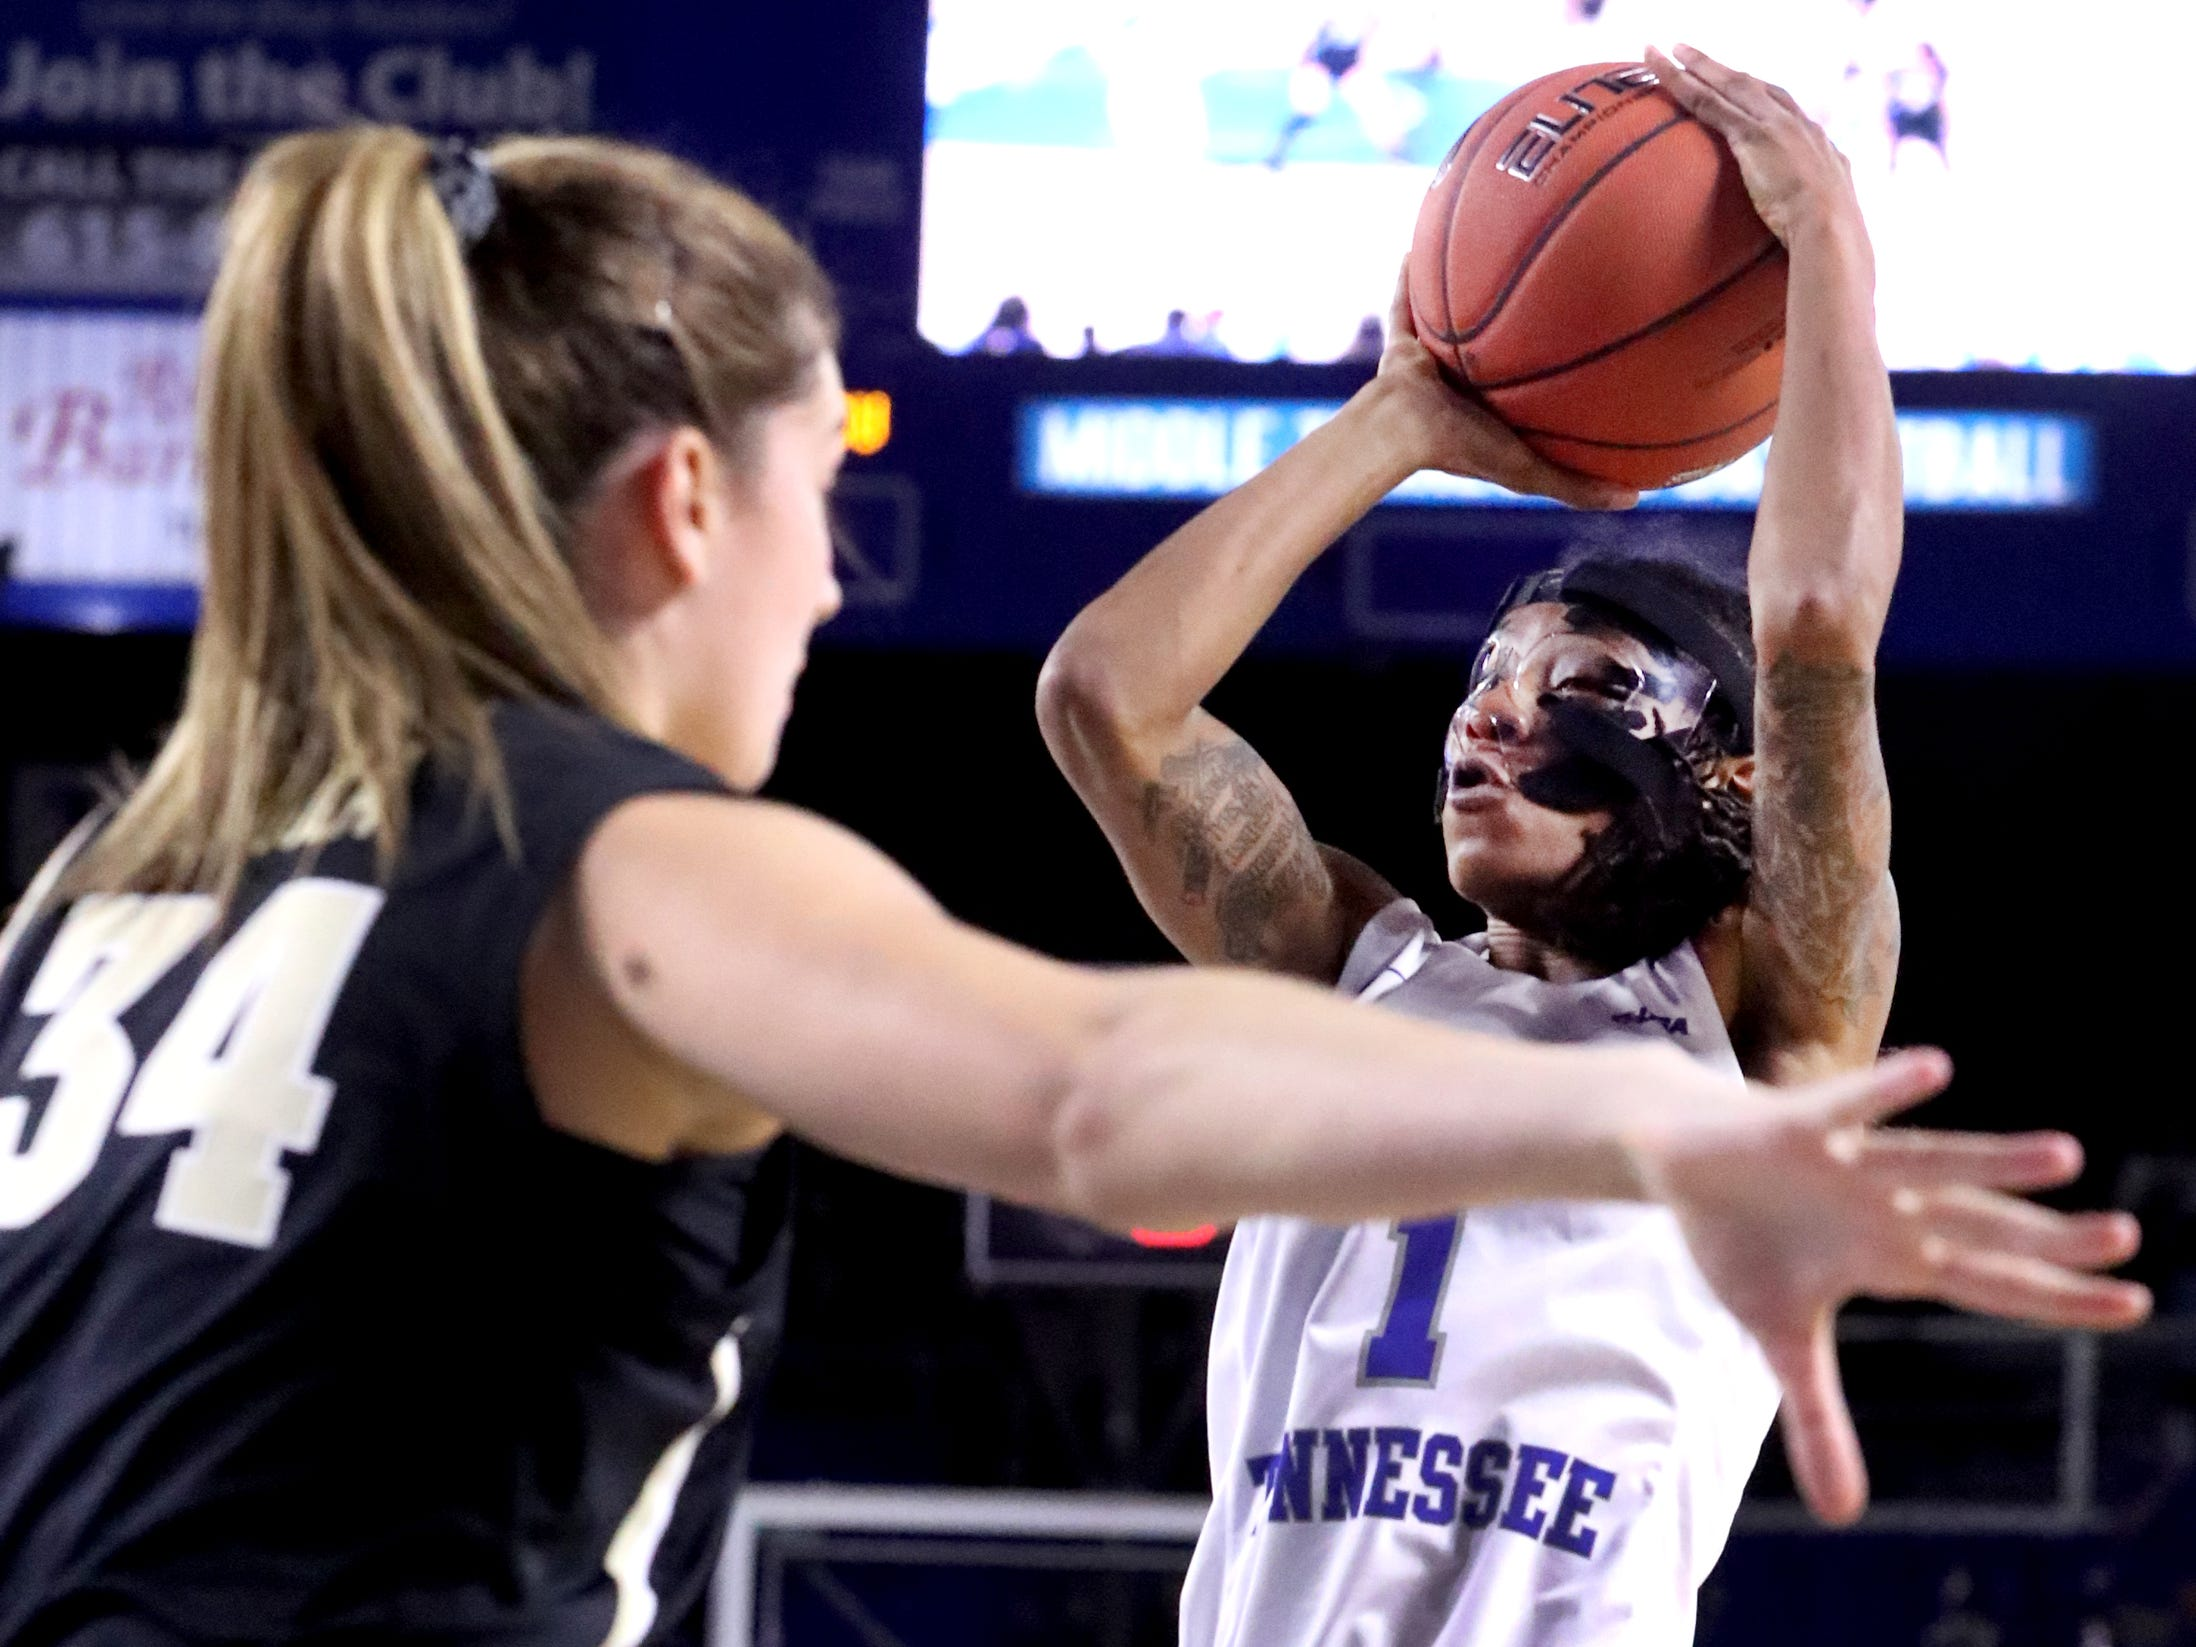 MTSU's A'Queen Hayes (1) goes up for a shot as Vanderbilt's Mariella Fasoula (34) guards her during the women's home opening game at MTSU on Friday, Nov. 8, 2018.